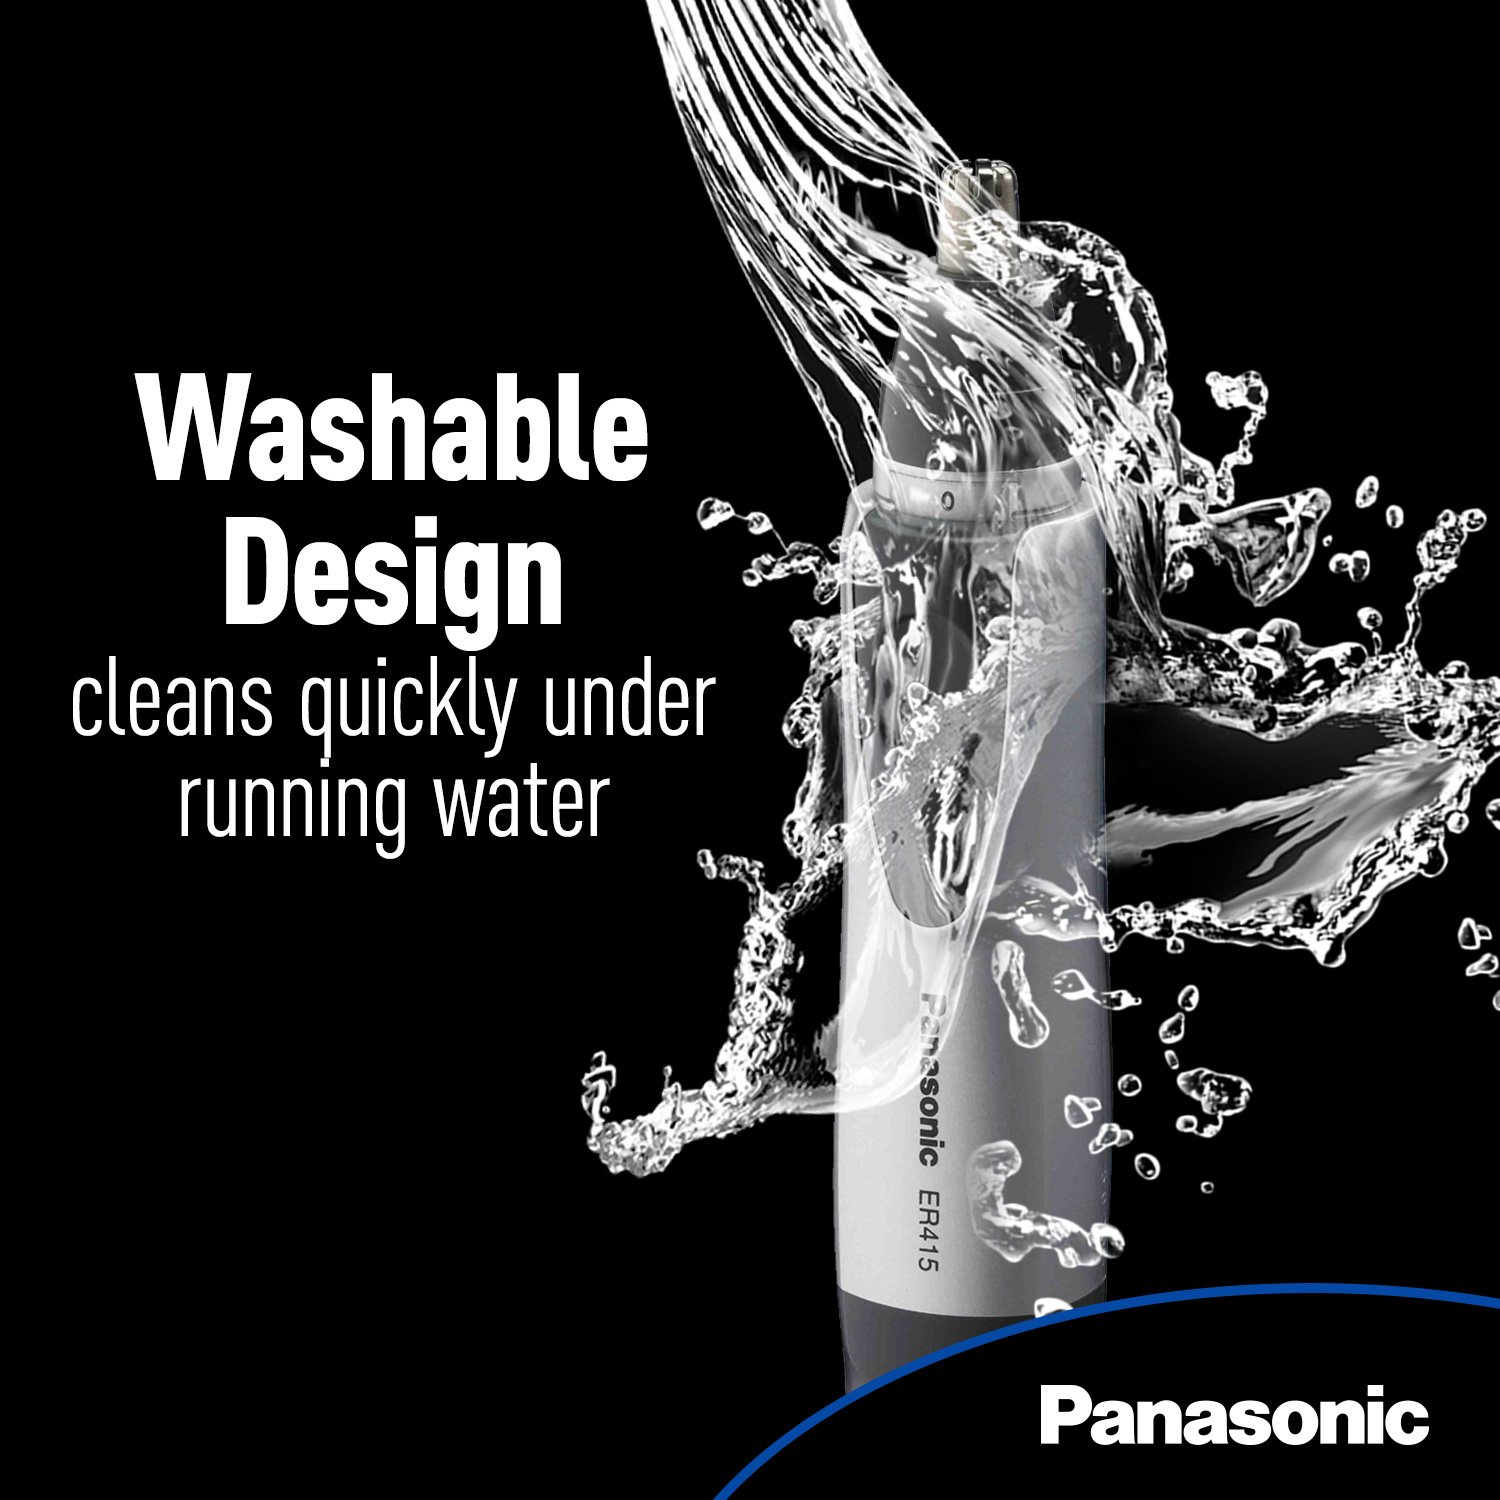 Panasonic Ear and Nose Trimmer, Wet/Dry Convenient, ER415SC by Panasonic (Image #4)